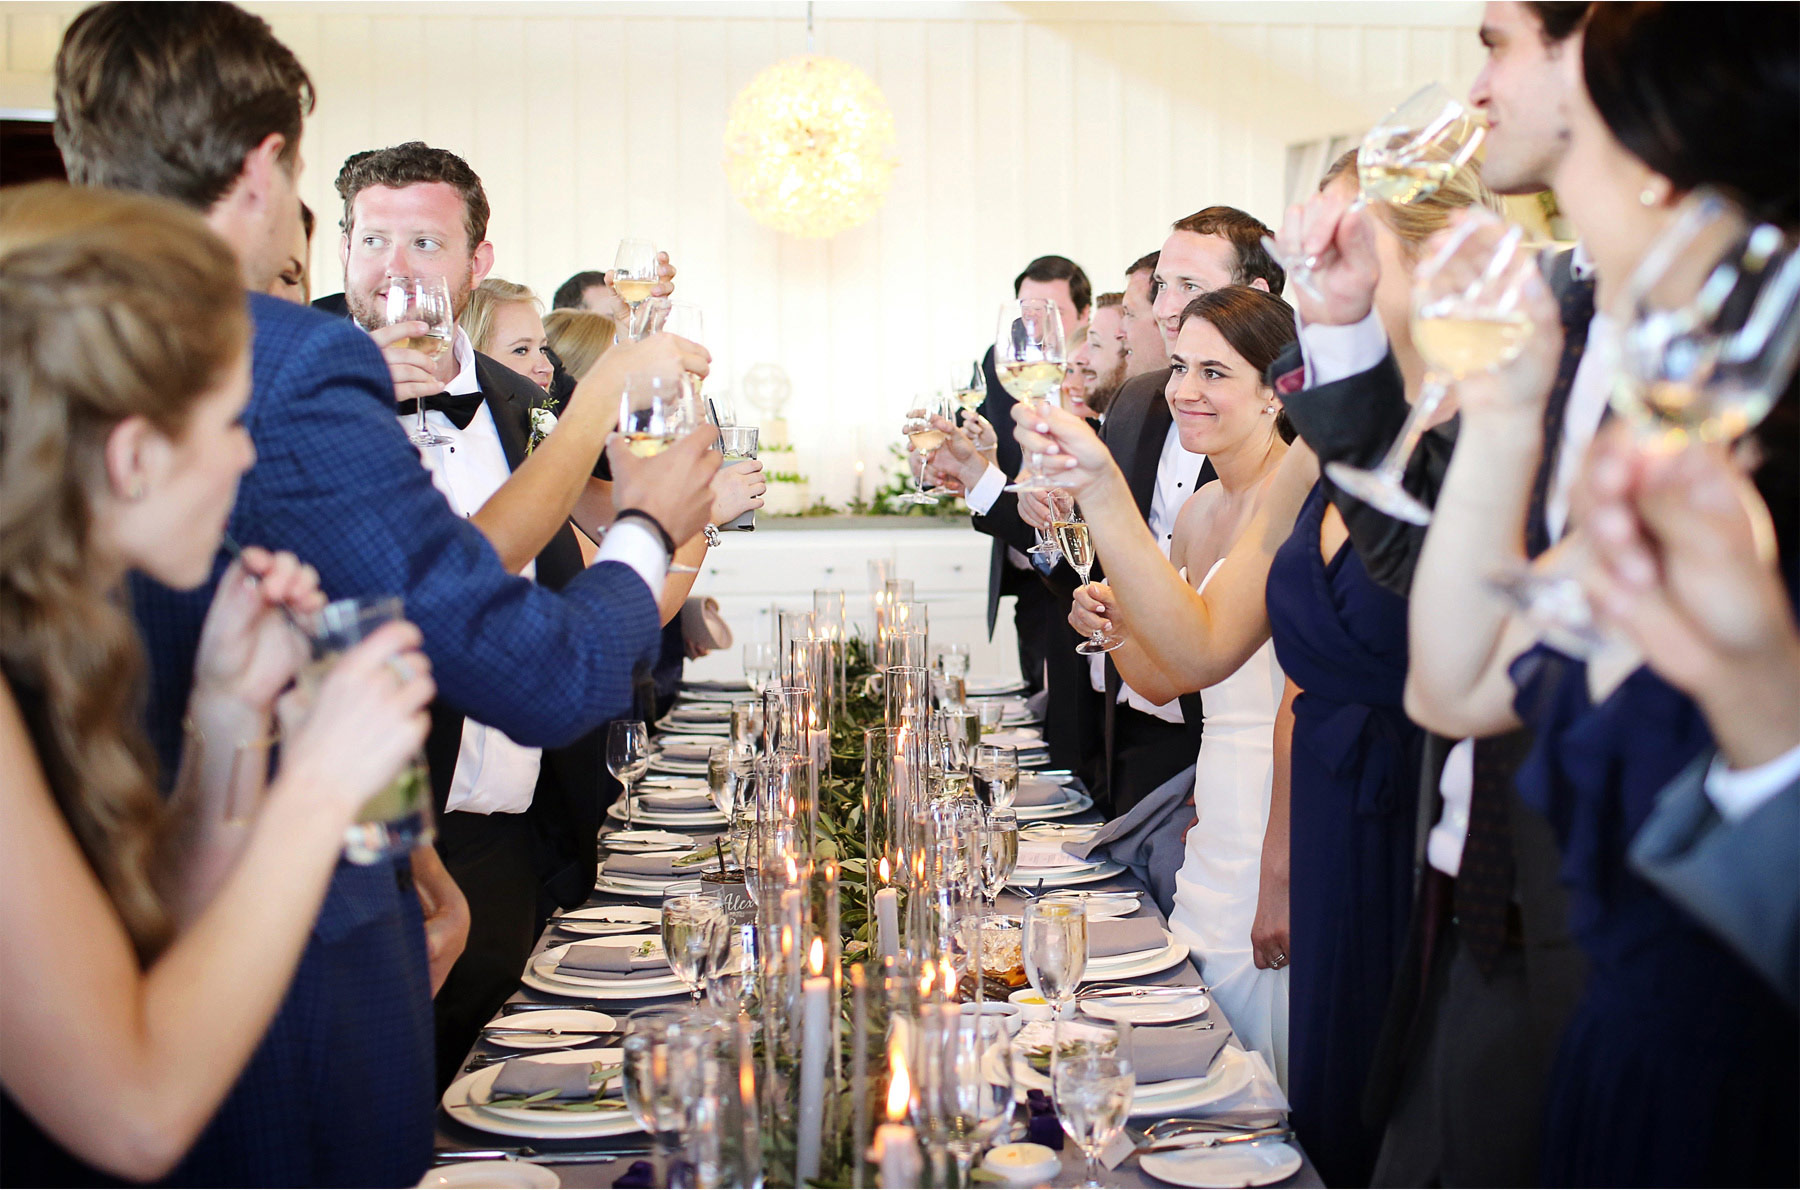 28-Napa-California-Wedding-Photographer-by-Andrew-Vick-Photography-Spring-Destination-Carneros-Resort-and-Spa-Reception-Bride-Groom-Guests-Toasts-Wine-Embrace-Alex-and-Roger.jpg